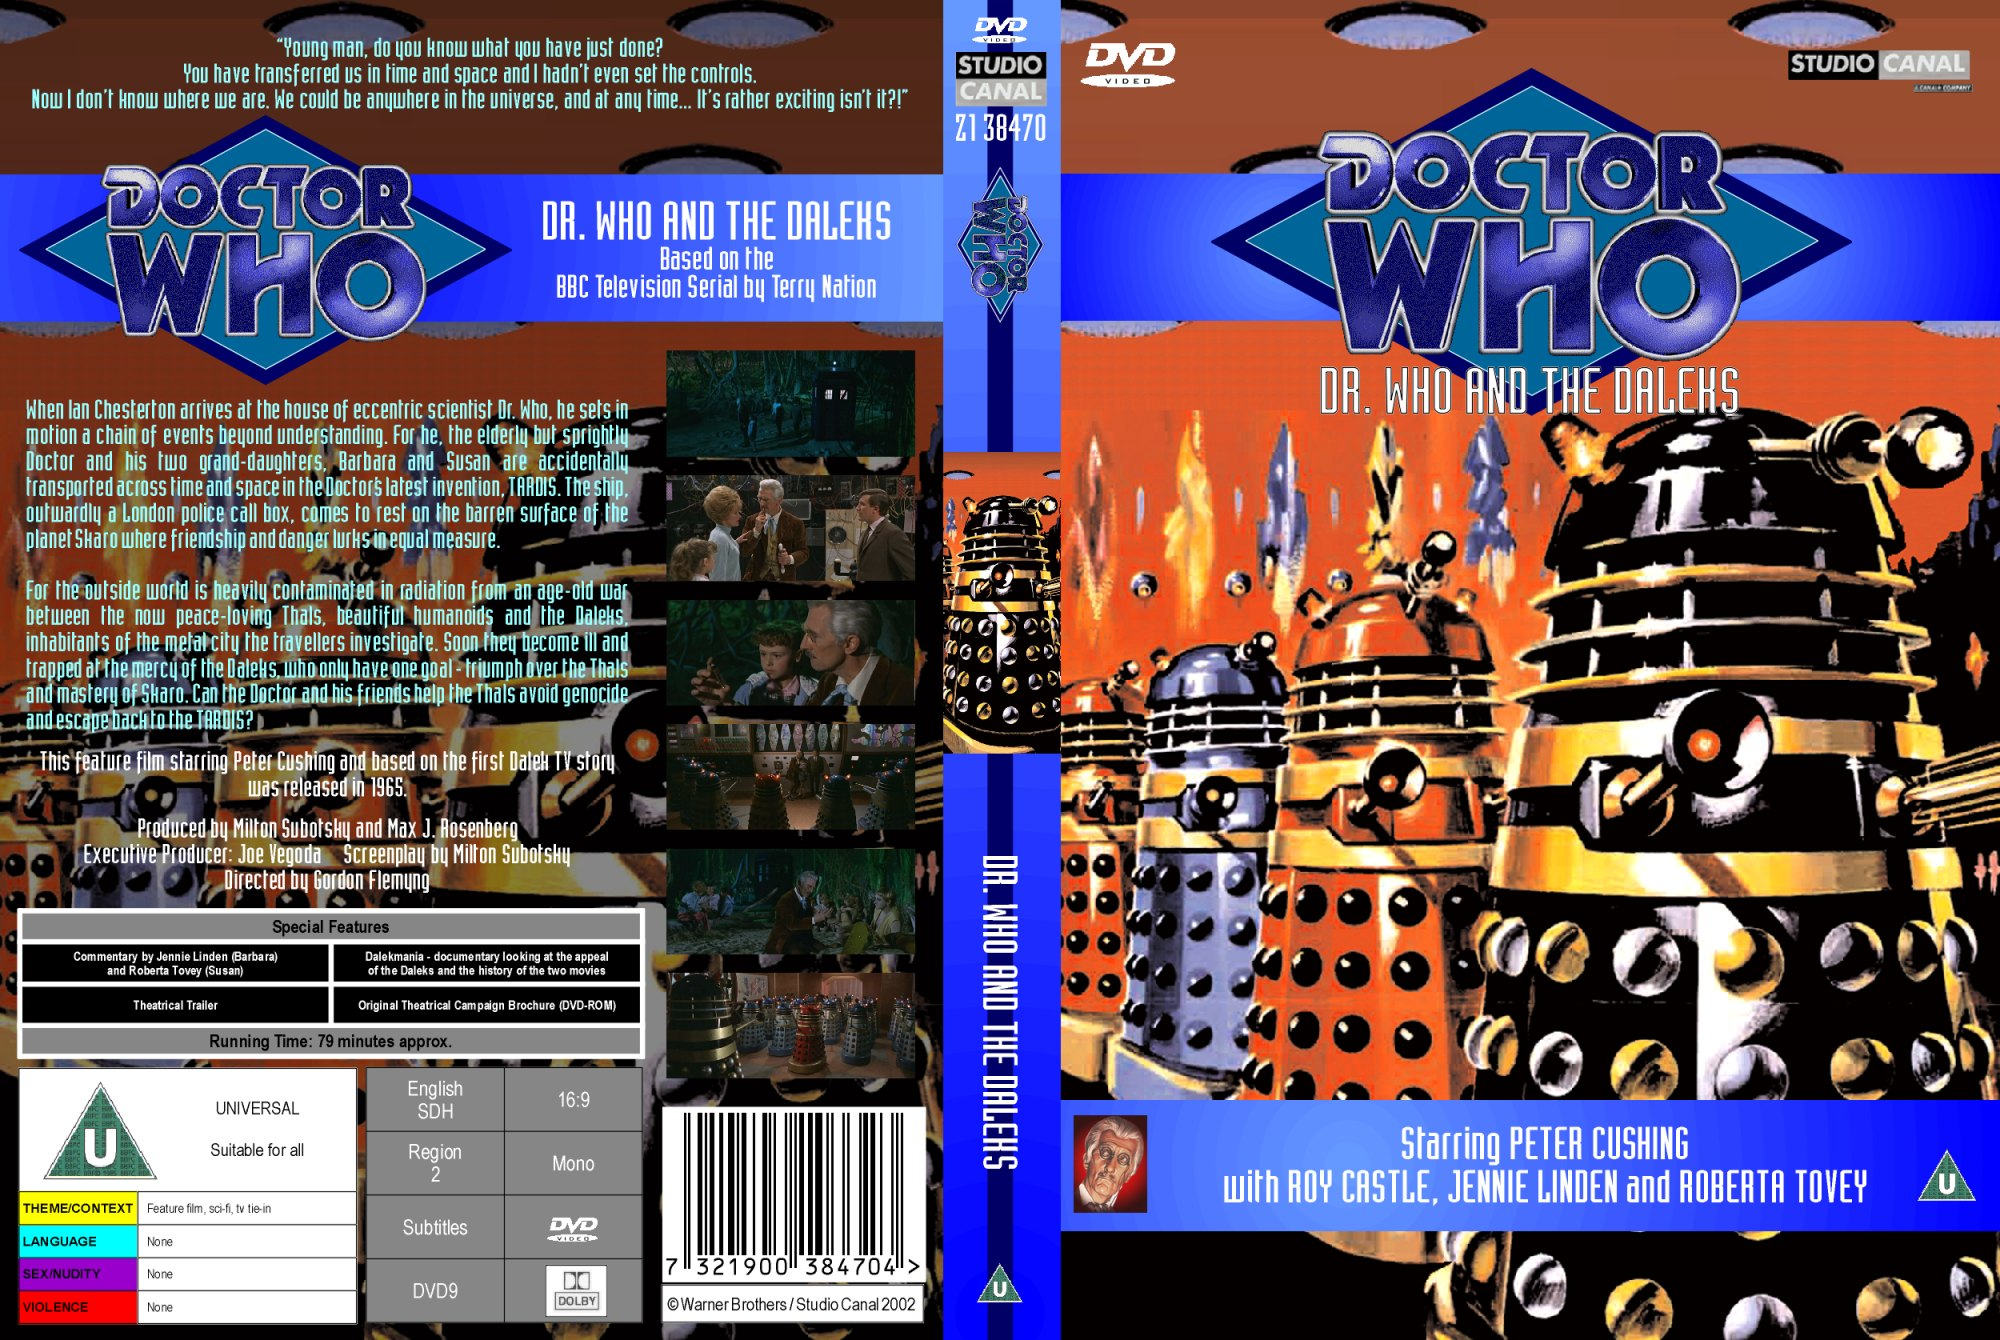 My standard DVD template for Dr. Who and the Daleks